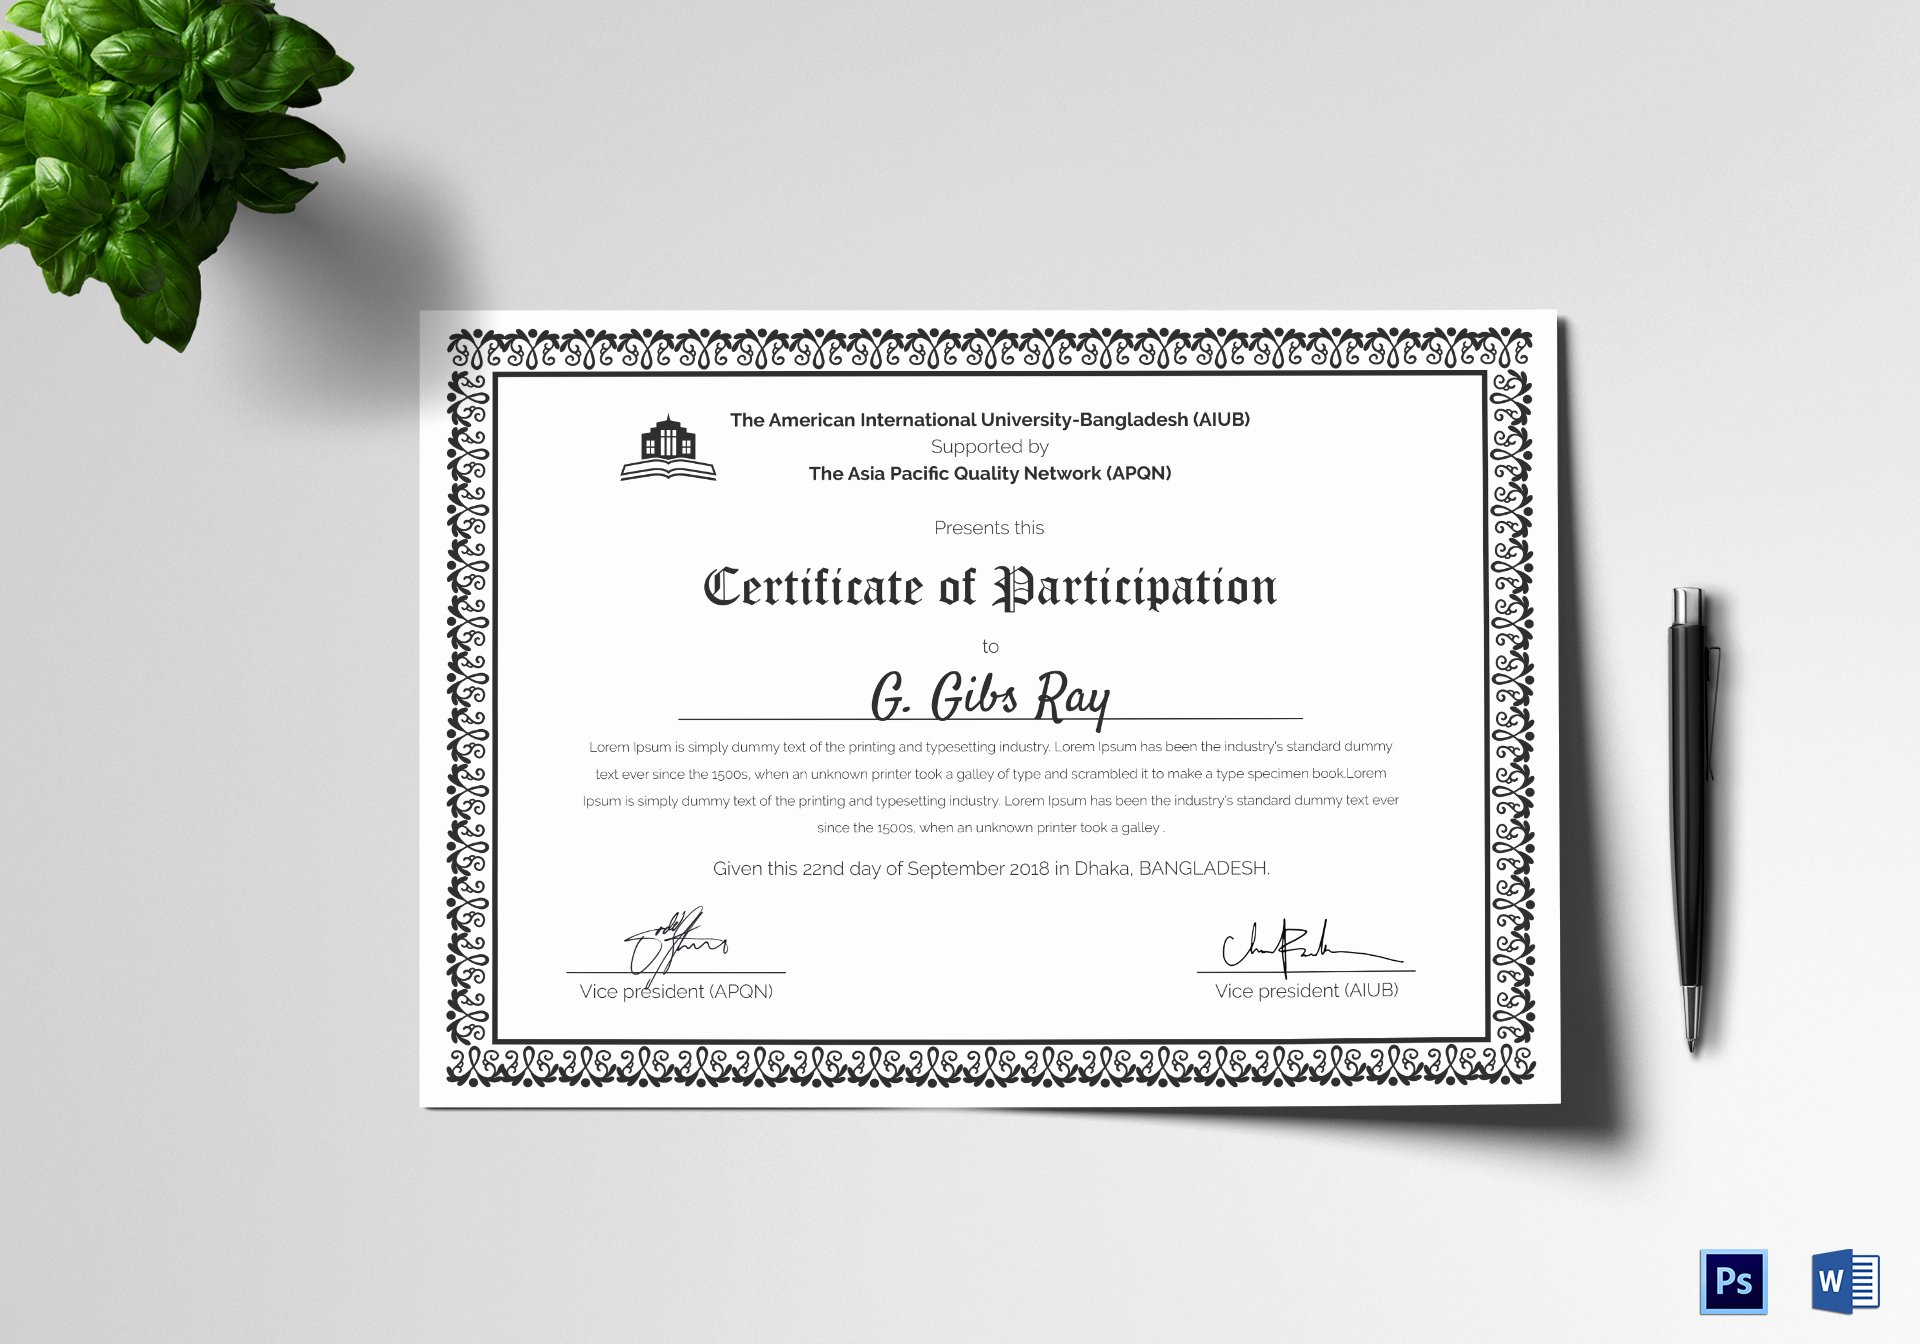 Certificate Of Participation Template Doc Elegant Printable Participation Certificate Design Template In Psd